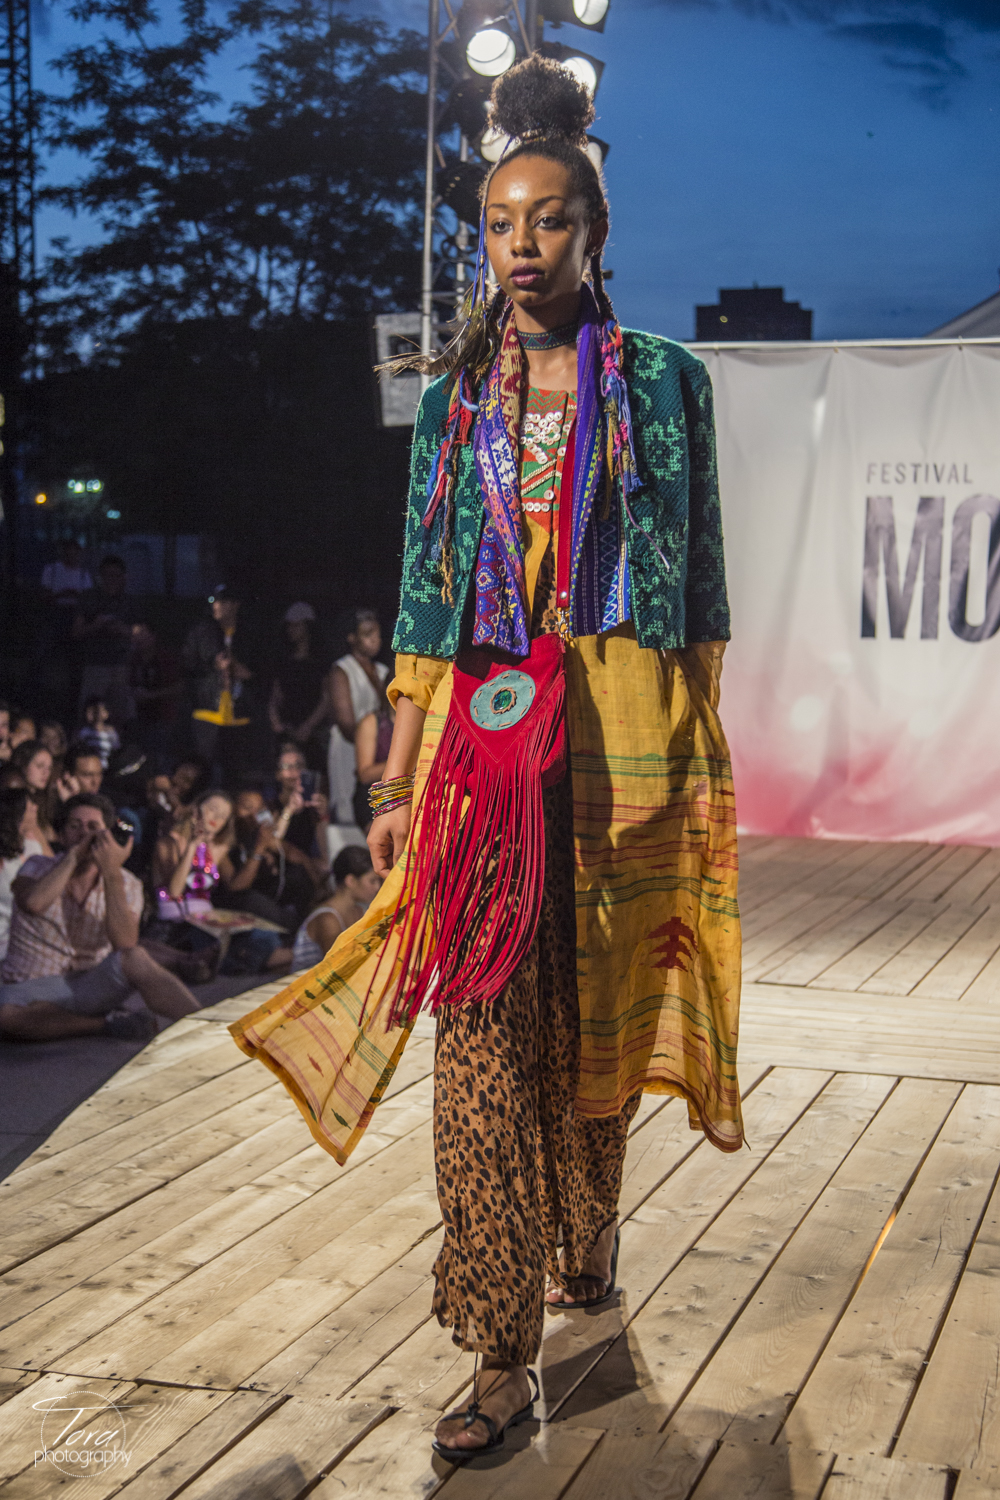 Tora Photography - Festival Mode et Design Montreal -186.jpg